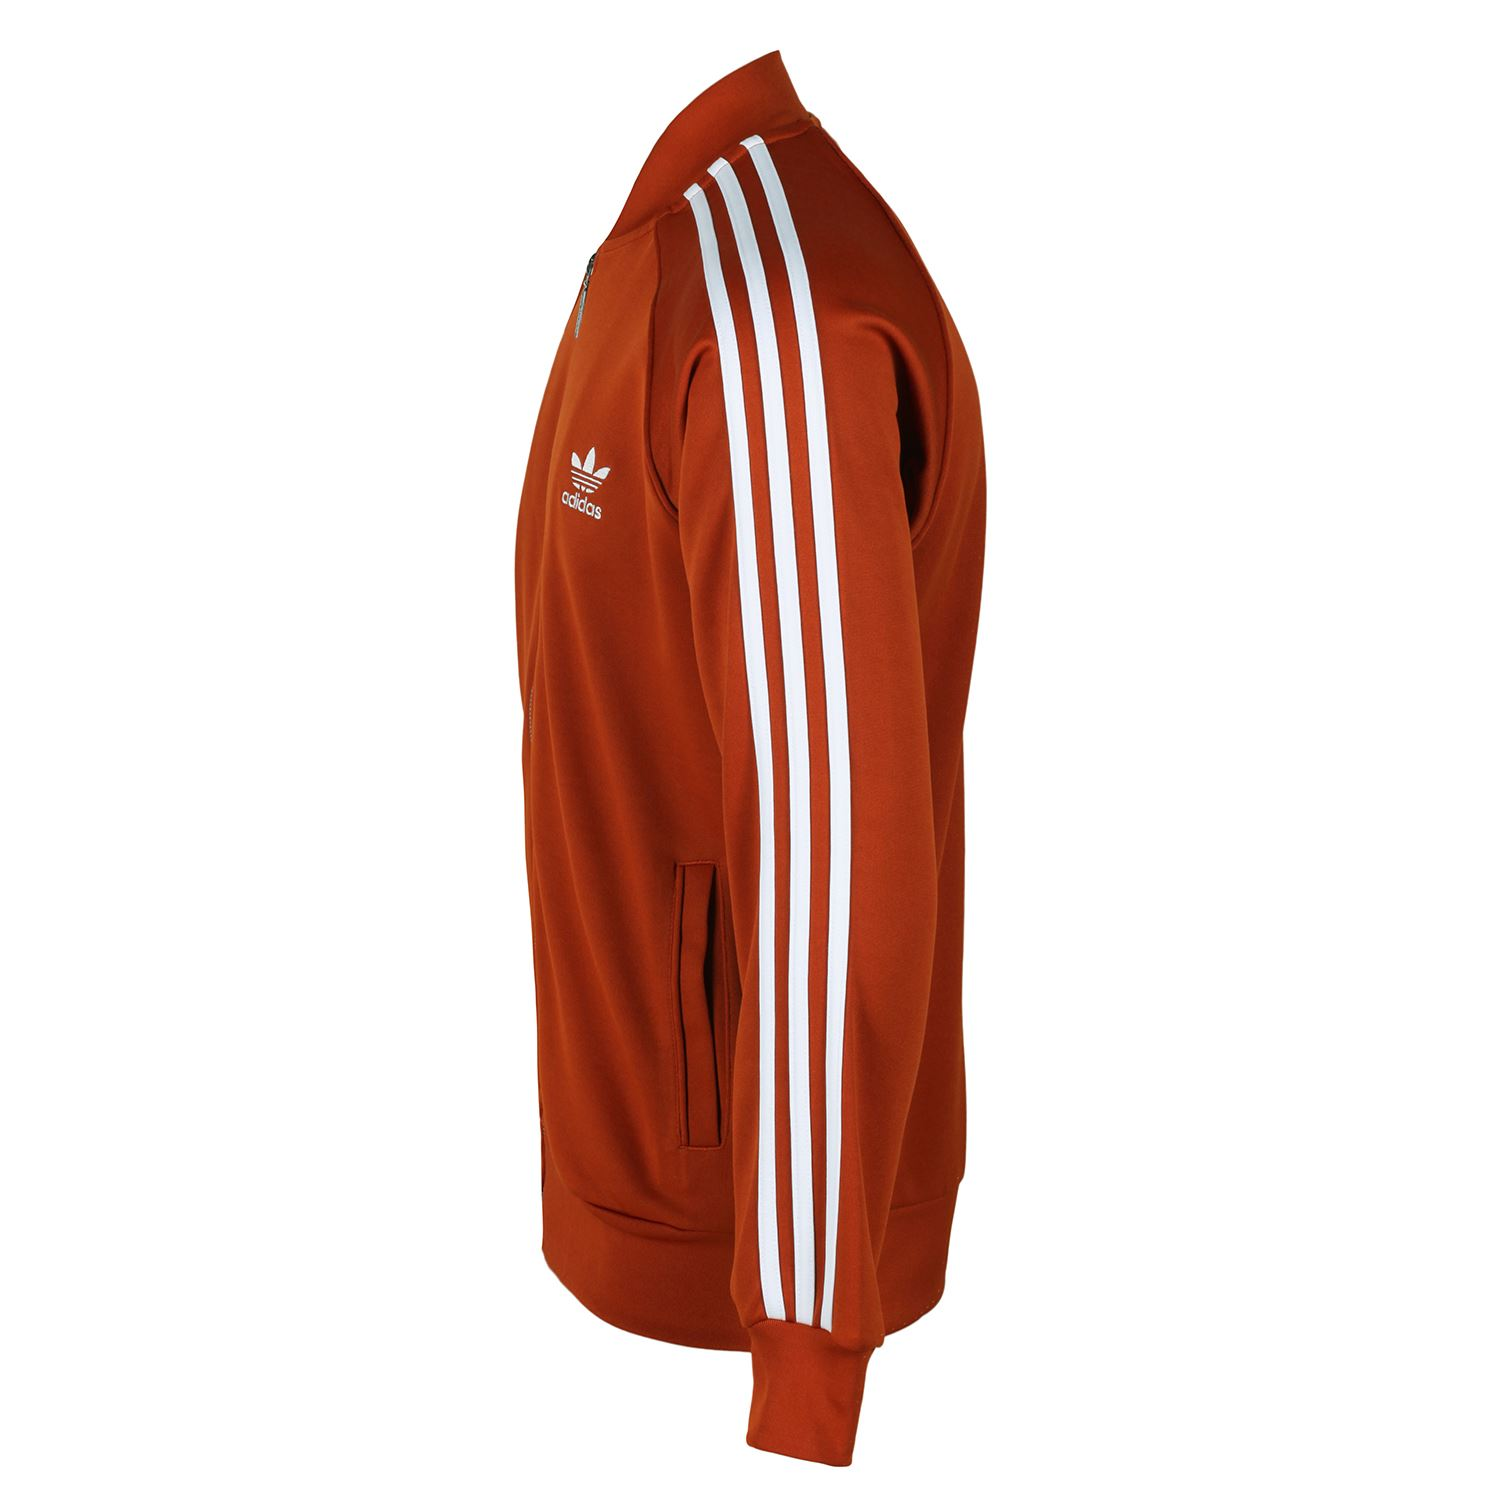 Details about adidas ORIGINALS MEN'S SUPERSTAR TRACK TOP JACKET TREFOIL FOX RED RETRO VINTAGE